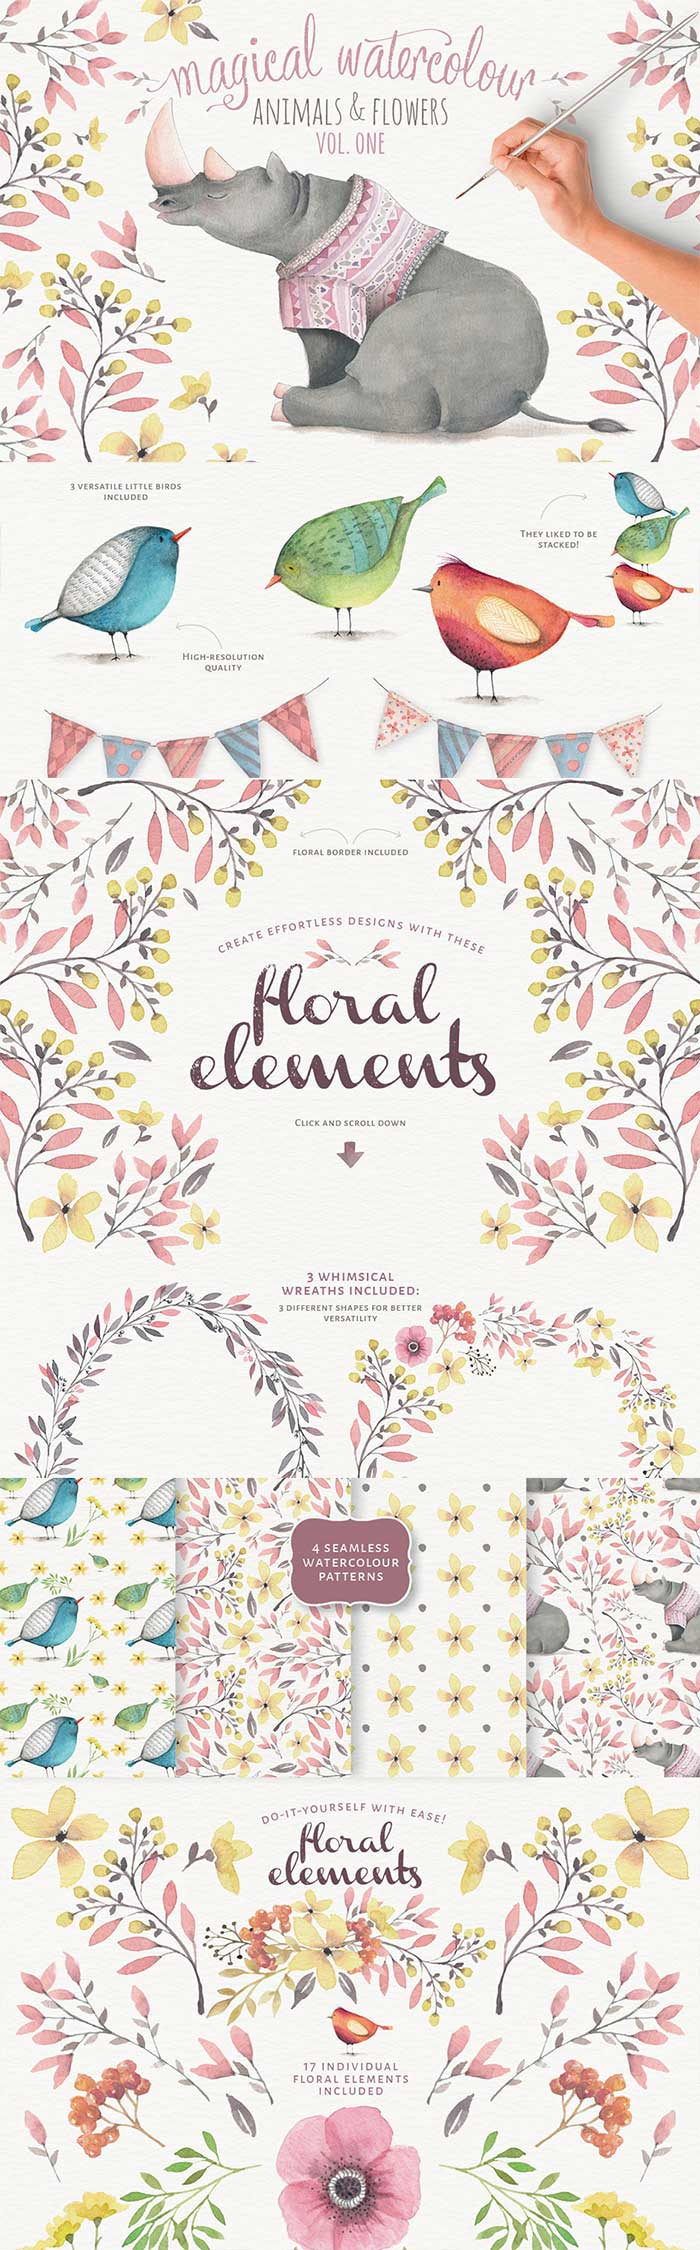 Magical Watercolor Animals + Flowers vol. 1 is part of the Design Cuts Graphics Bundle for 91% Off!